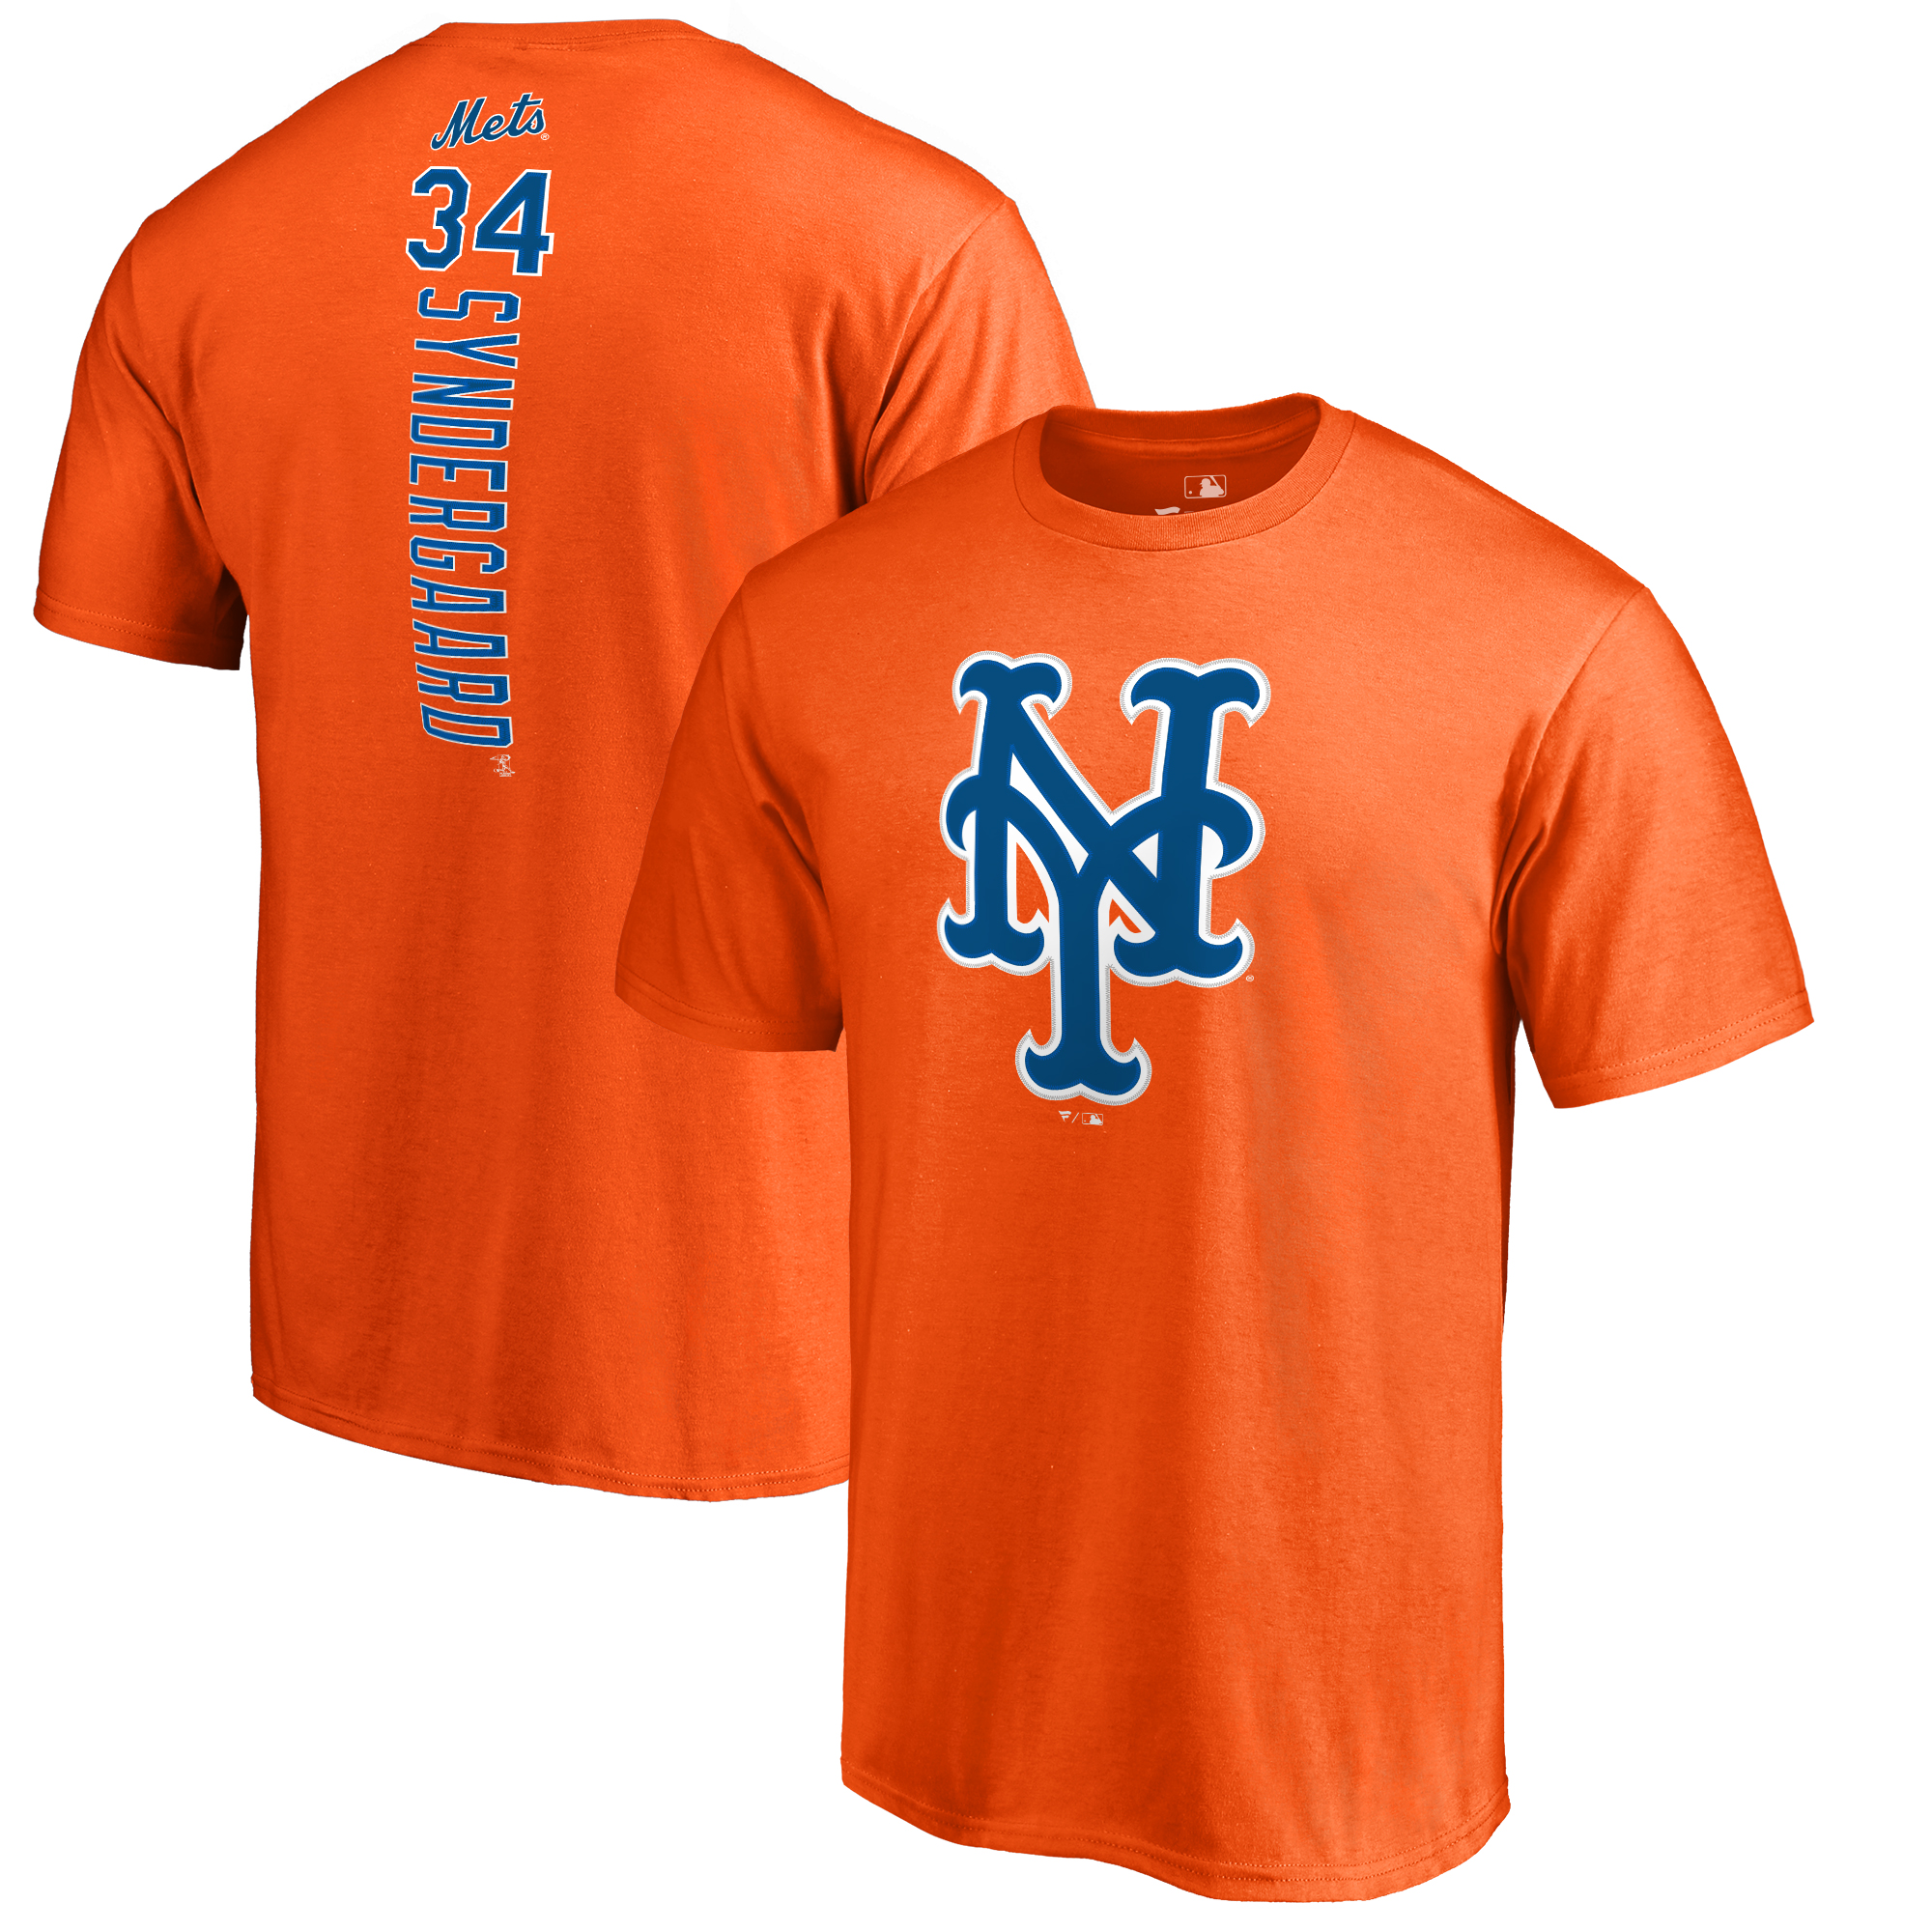 Noah Syndergaard New York Mets Backer T-Shirt - Orange